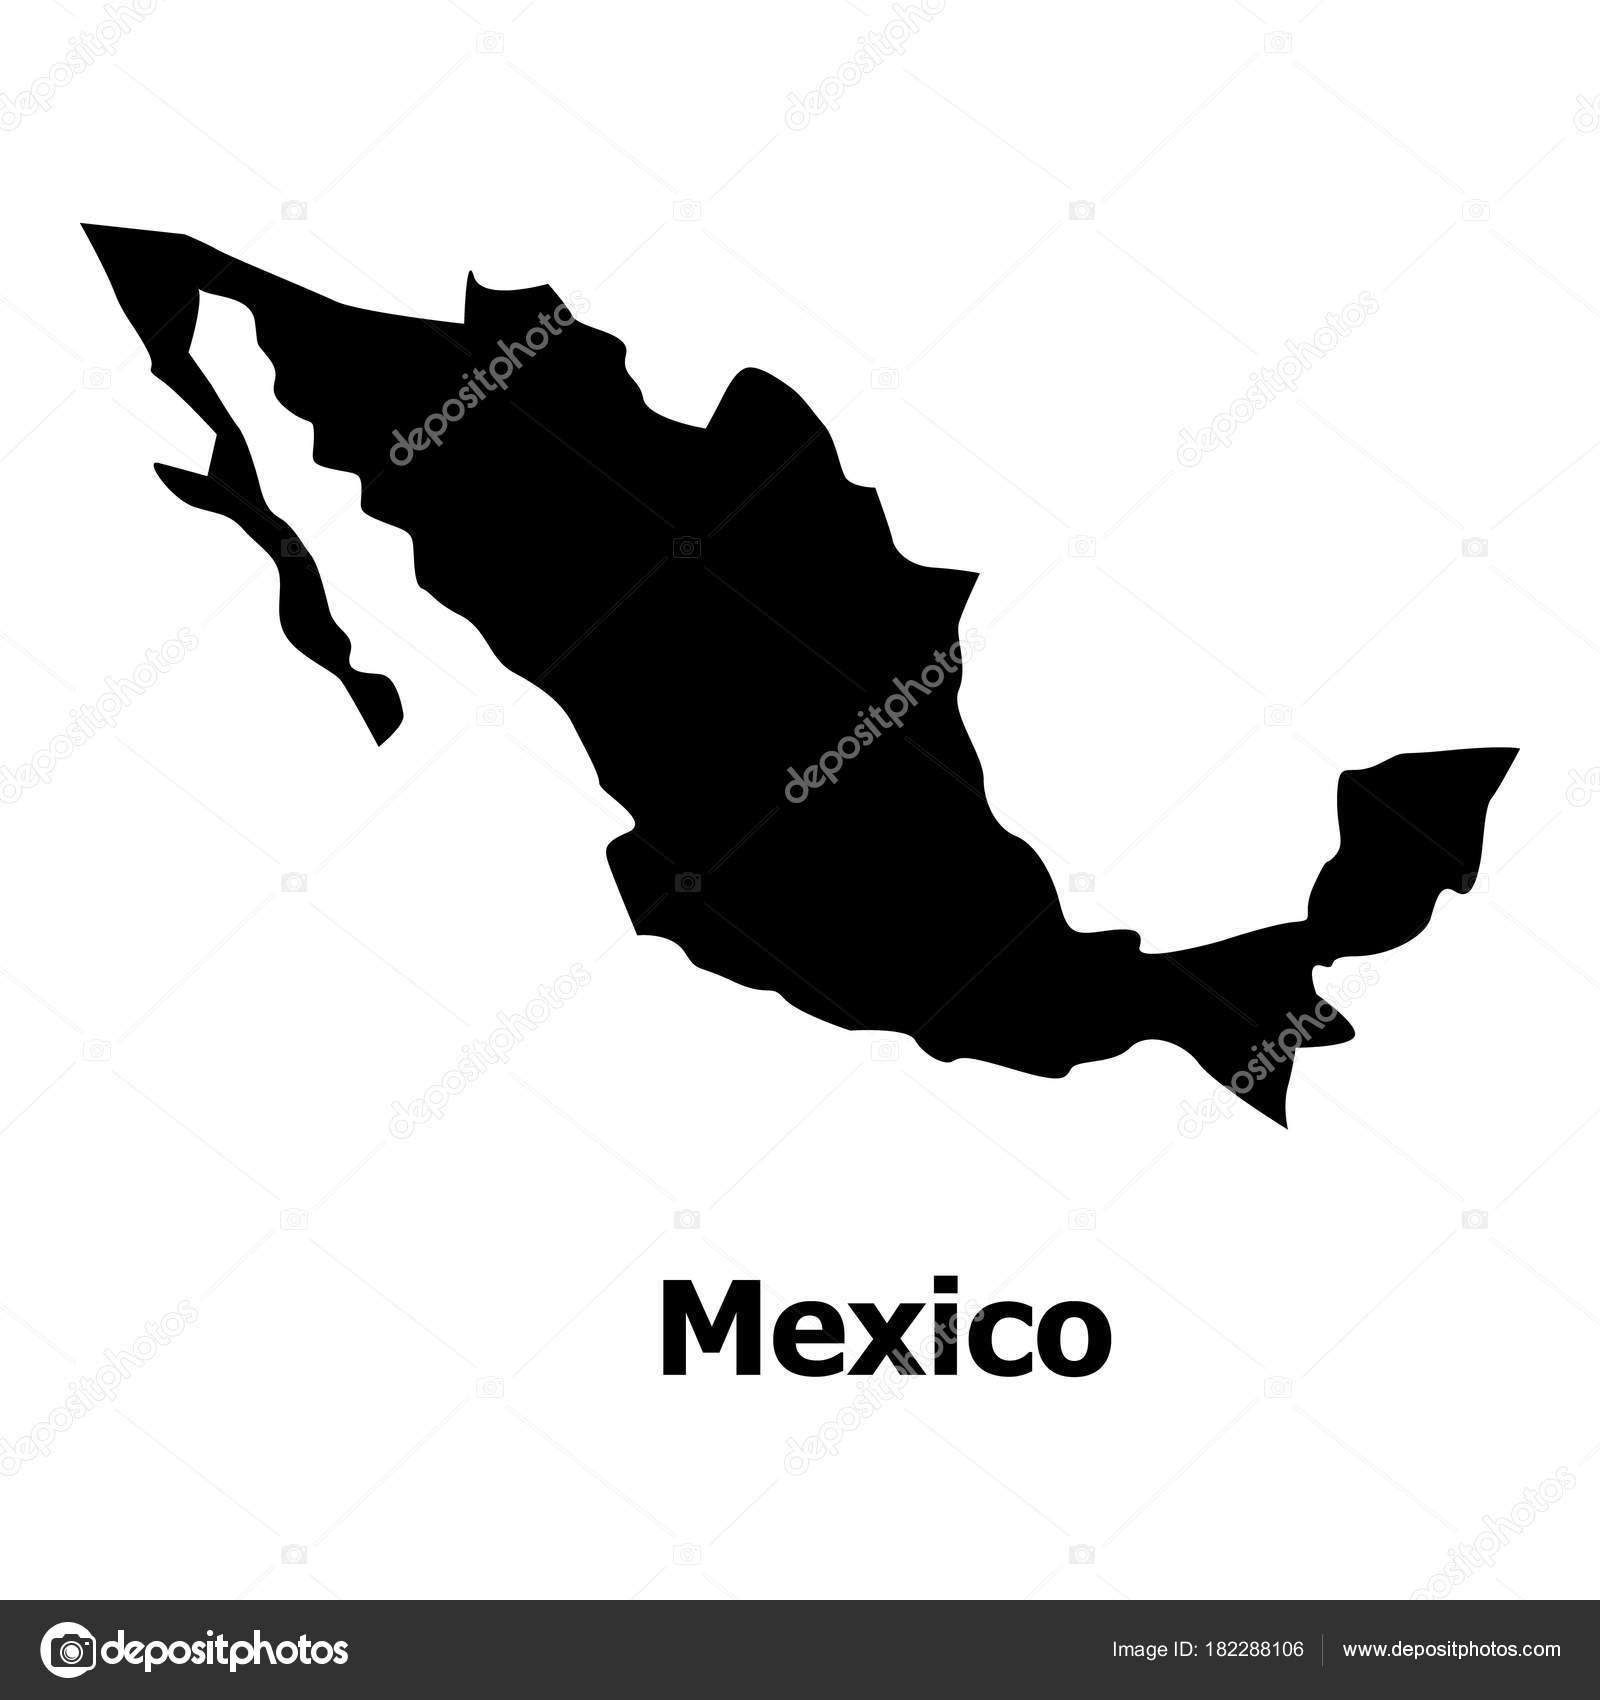 Mexico map icon, simple style — Stock Vector © ylivdesign ... on homes in campeche mexico, simple turkey map, the country of mexico, simple singapore map, simple canada map, simple usa map, information on mexico, fotos de mexico, simple eastern europe map, simple arizona map, simple cuba map, simple street map clip art, black and white outline map mexico, simple germany map, simple mexico map green, spanish mexico, simple vietnam map,